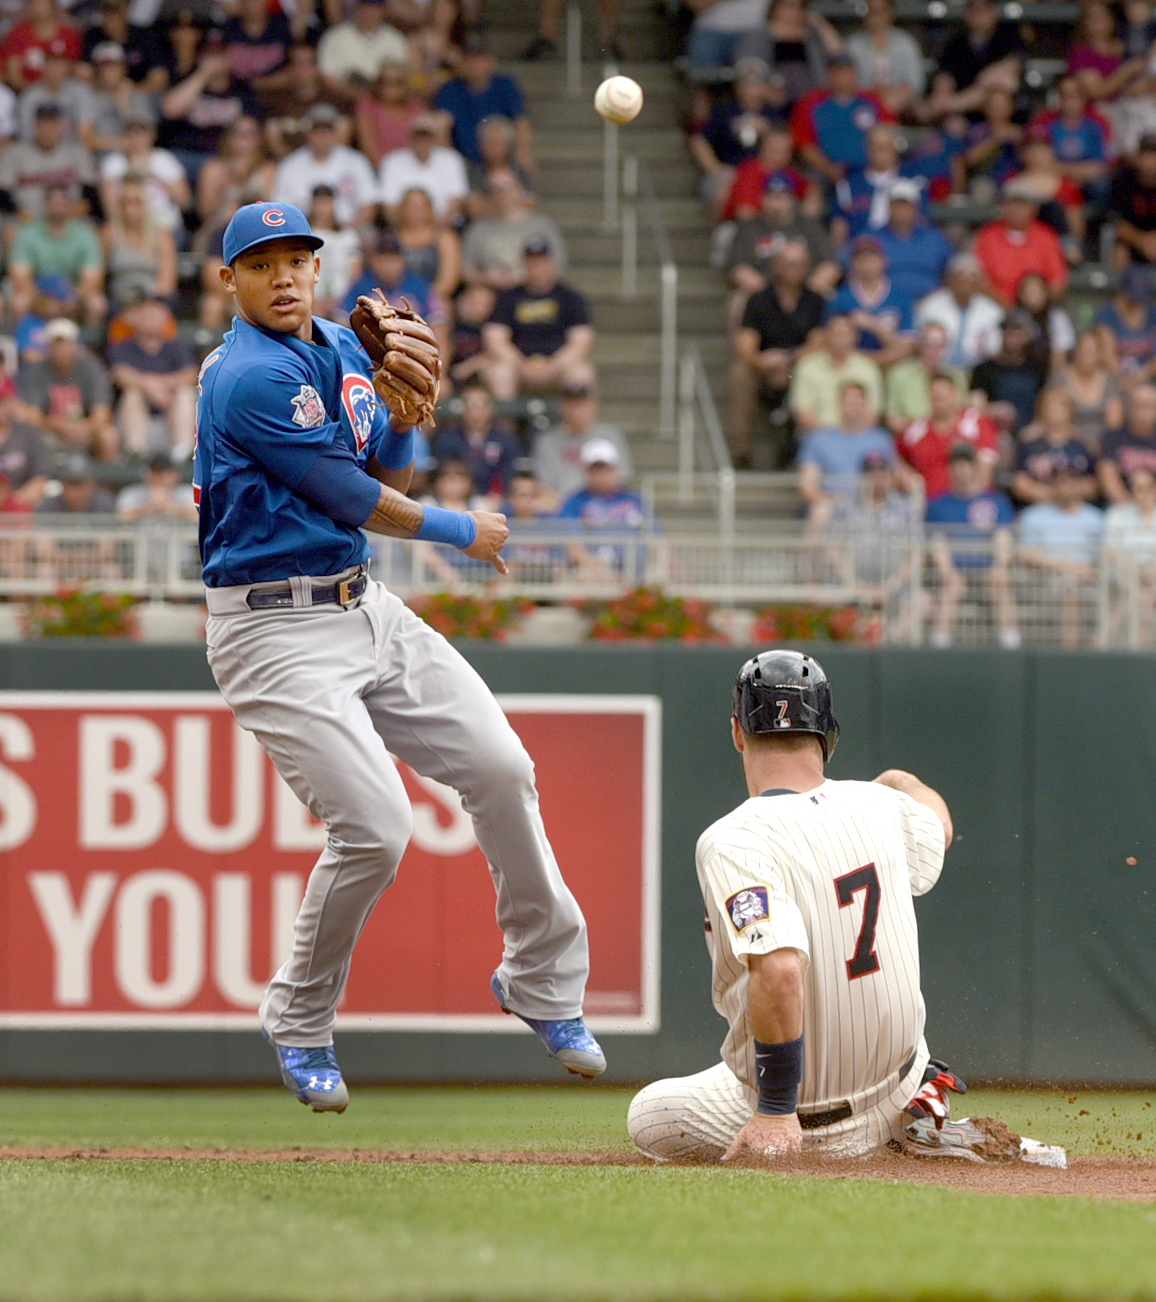 Cubs second baseman Addison Russell doubles off Twins base runner Joe Mauer in the first inning of a baseball game, Saturday, June 20, 2015, in Minneapolis. (AP Photo/Richard Marshall)